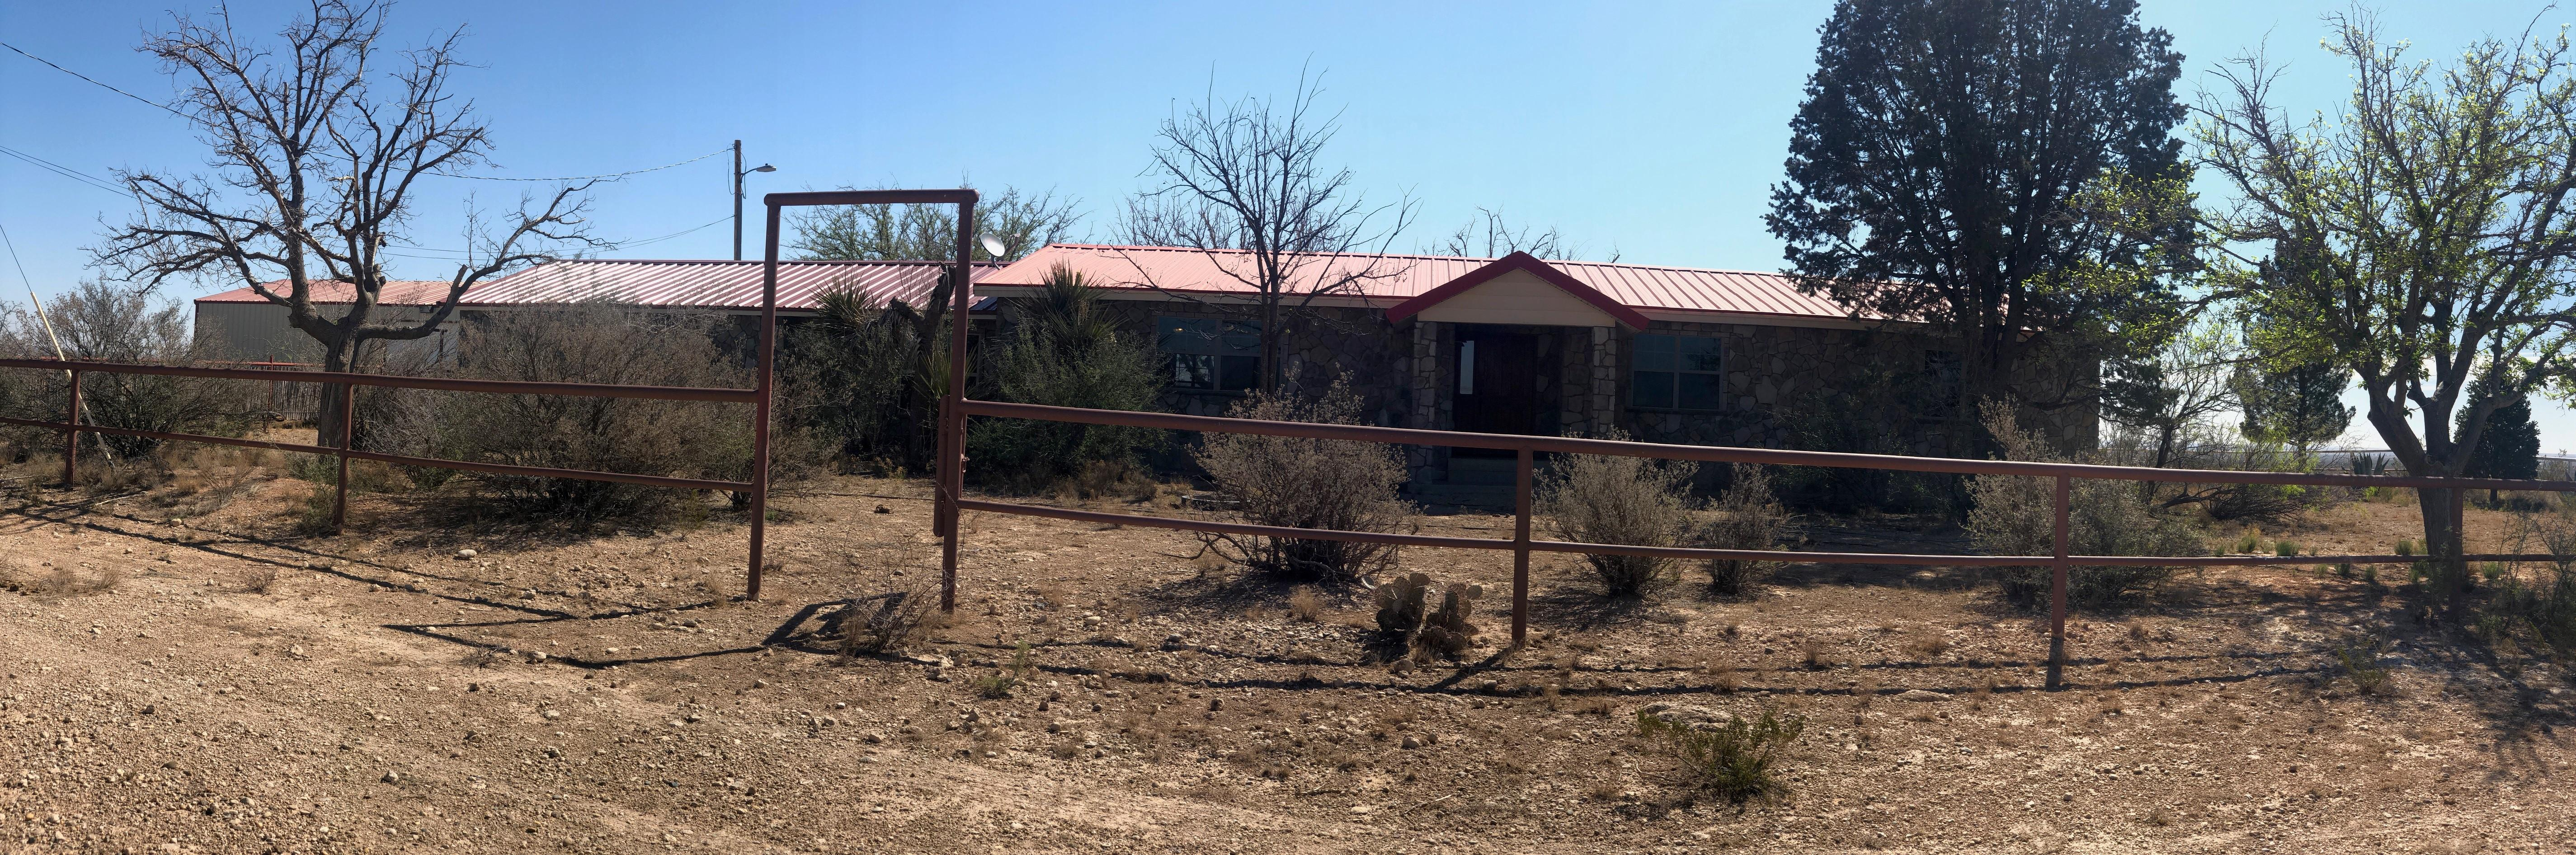 Property Image for 1906 Pecos Hwy